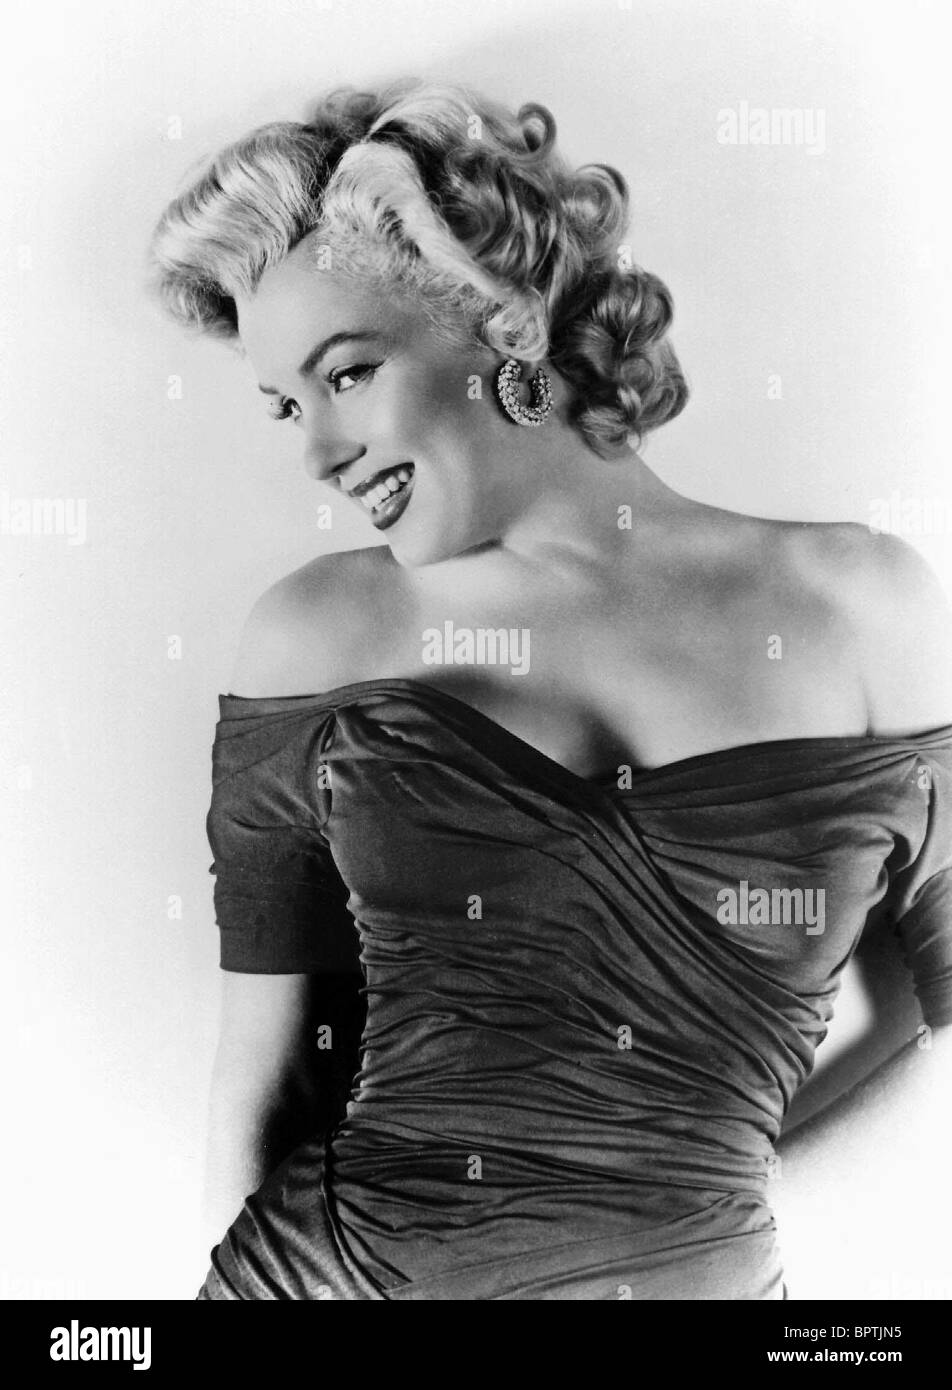 MARILYN MONROE ACTRESS (1958) - Stock Image